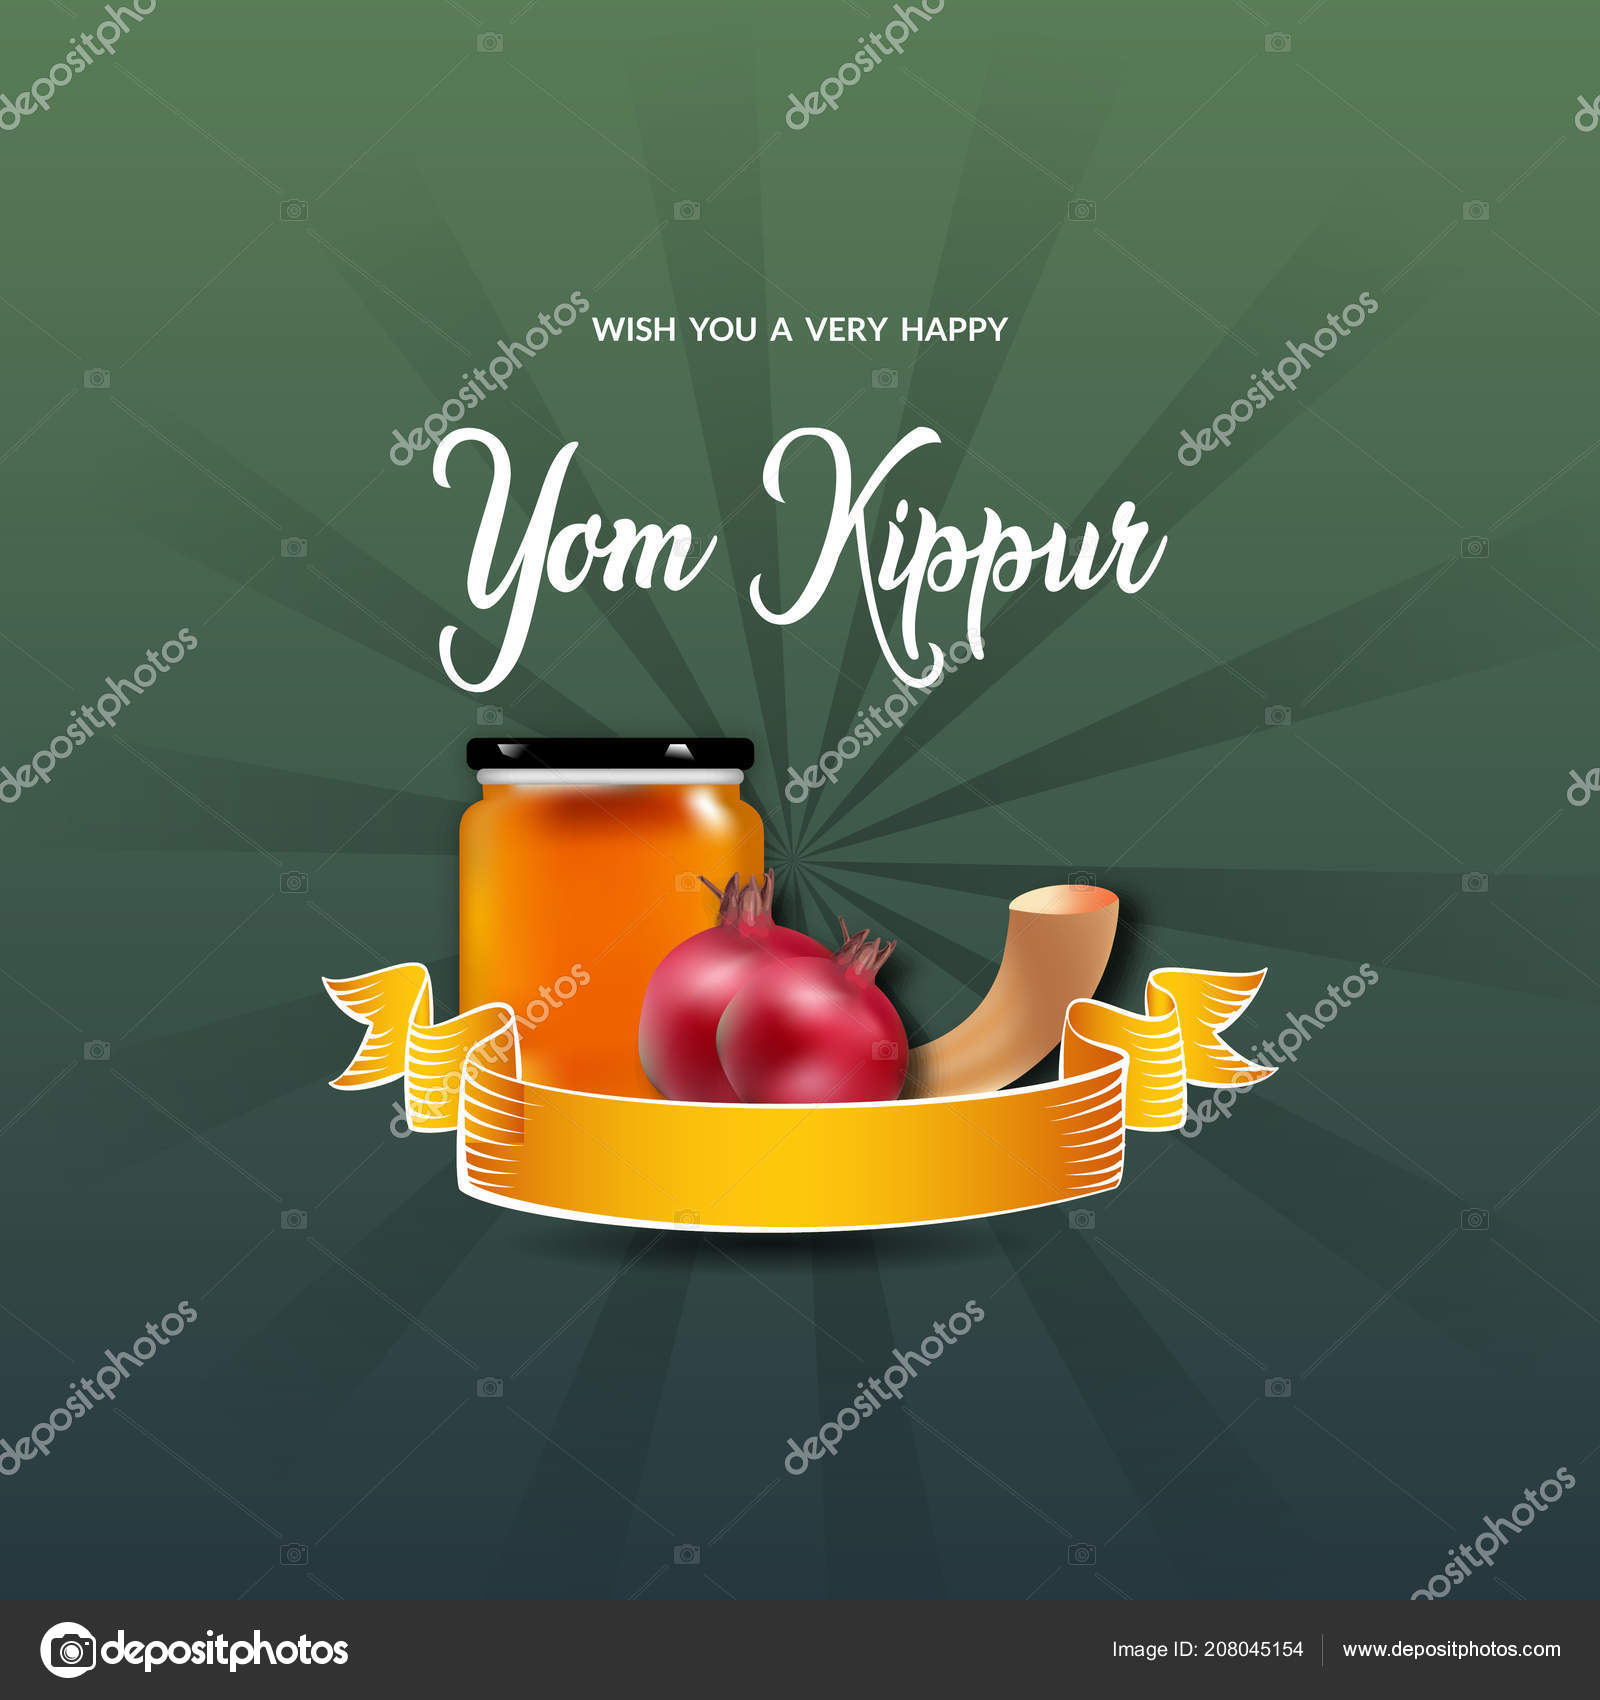 Yom Kippur Flyer Card Wallpaer Design Jewish Holiday Stock Vector